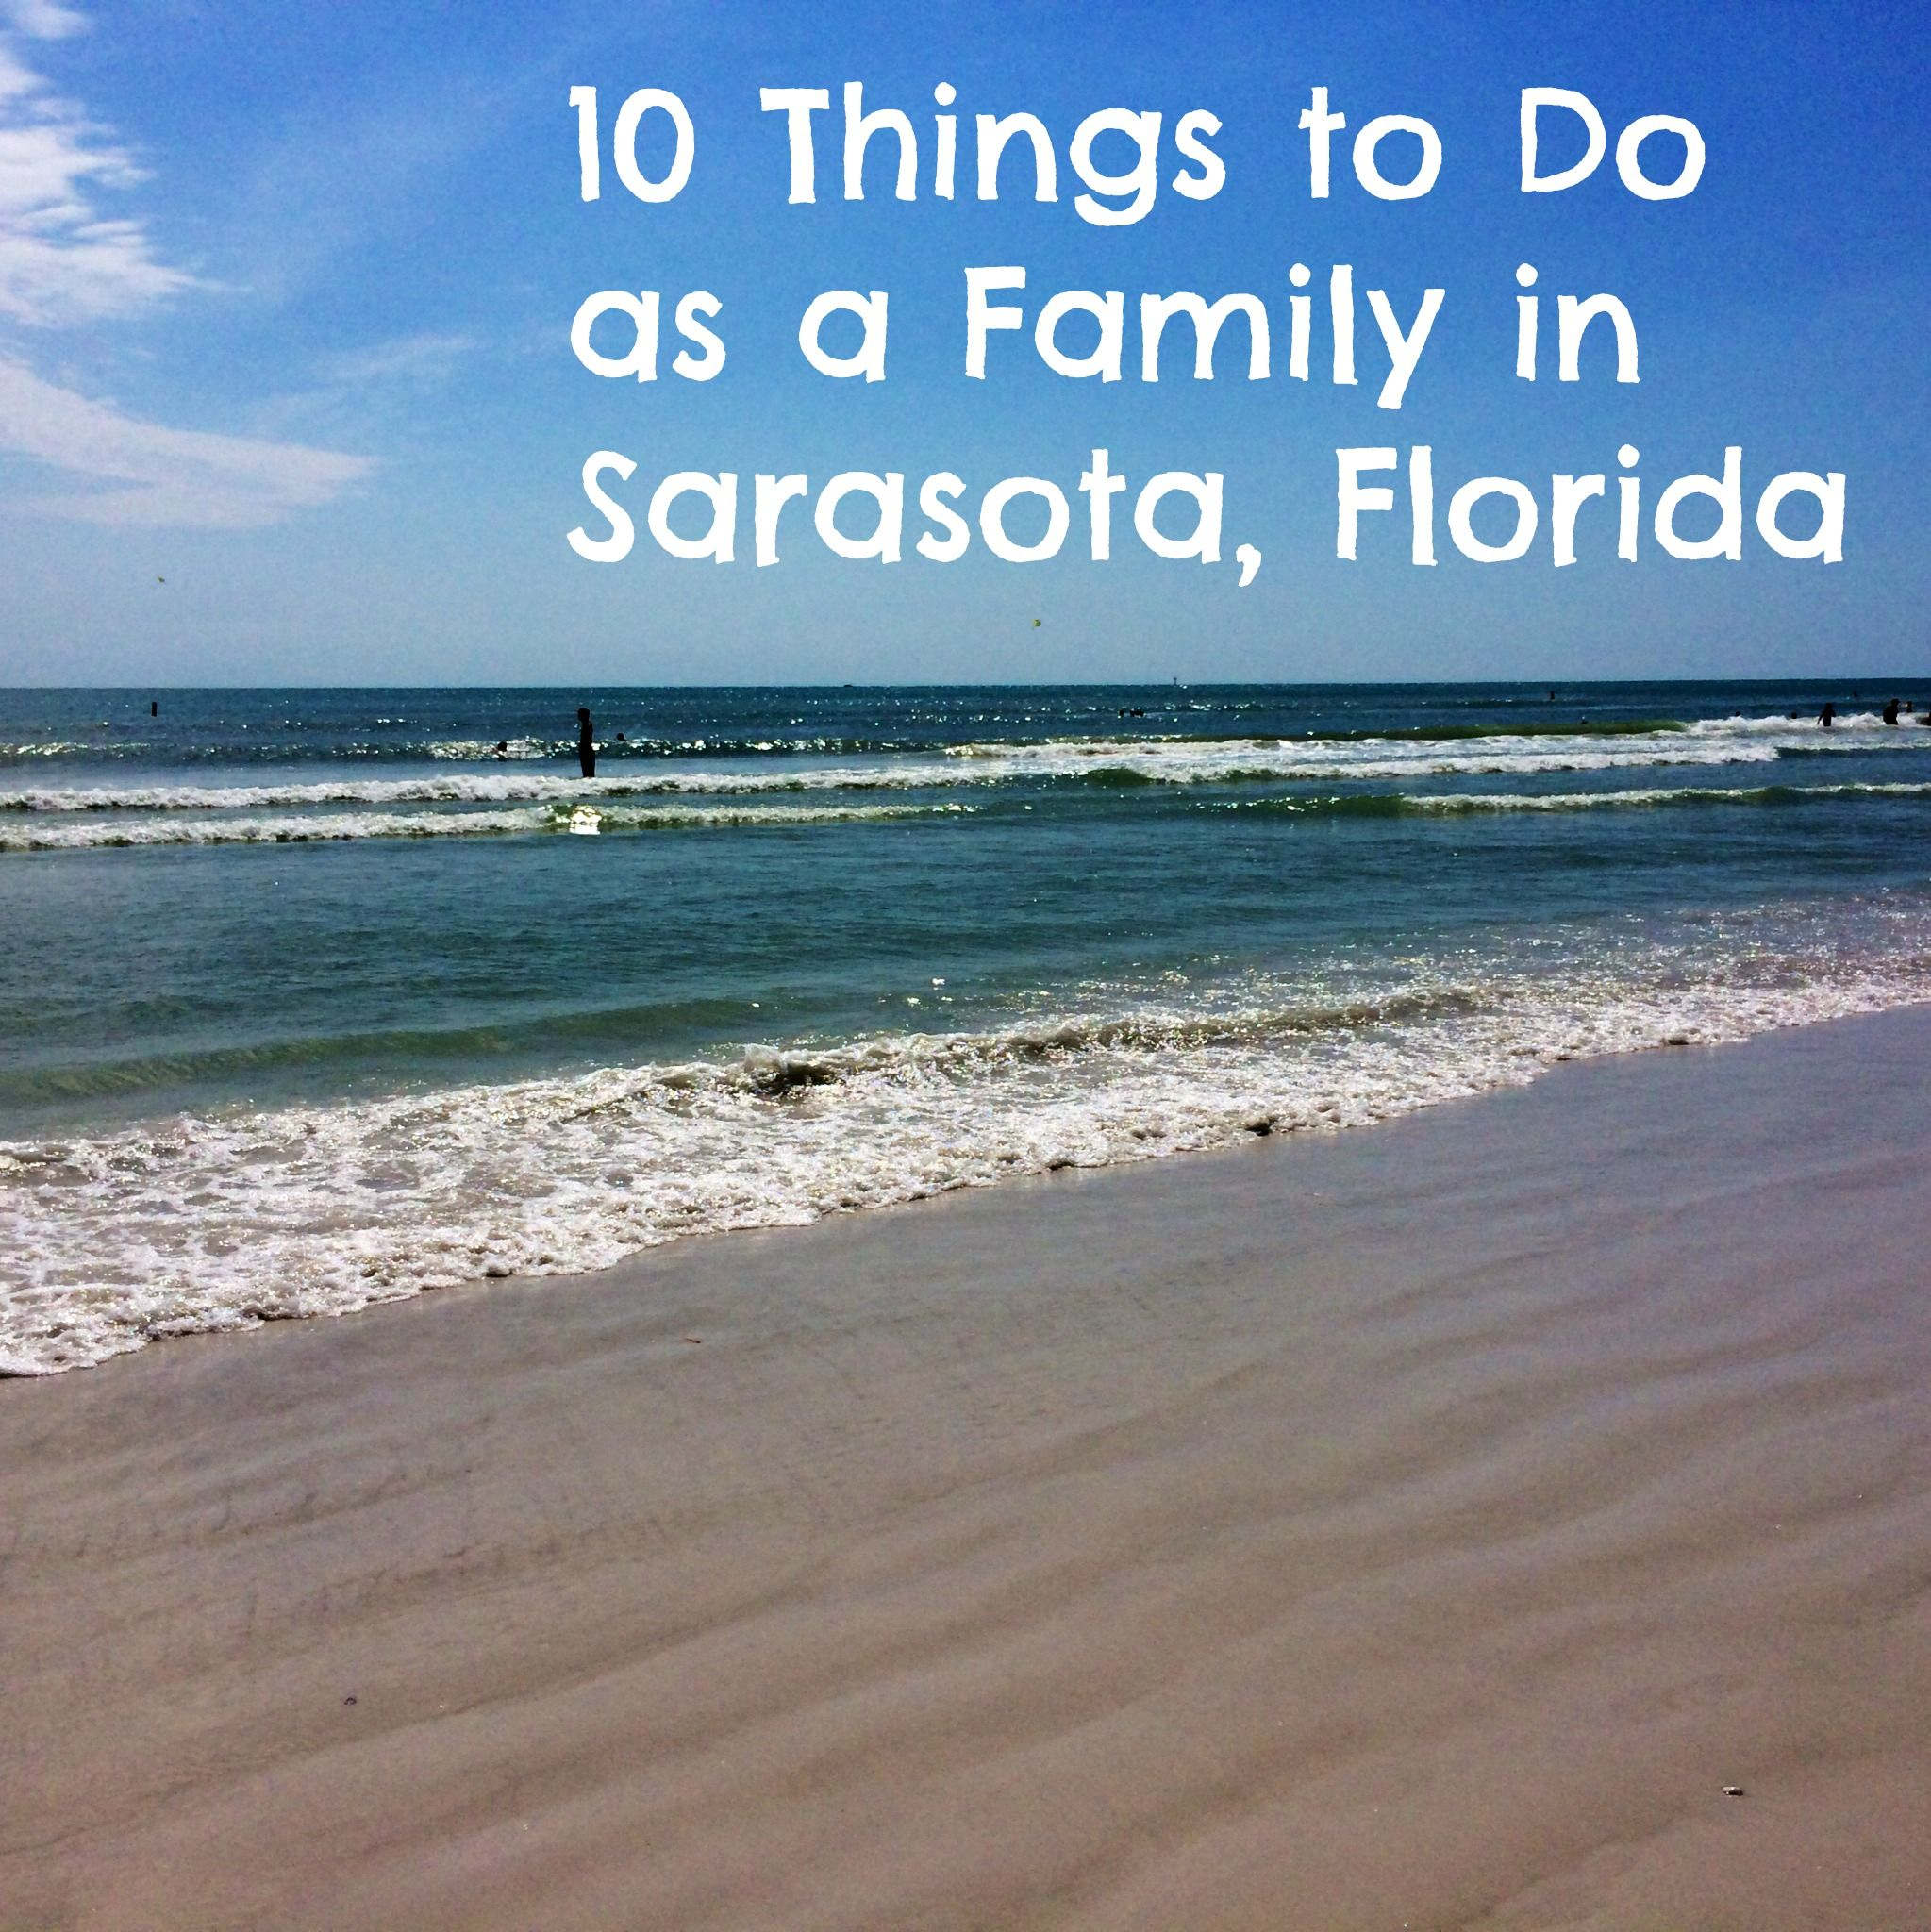 Things To Do In Sarasota As A Family Washington Dc Area - 10 things to see and do in sarasota